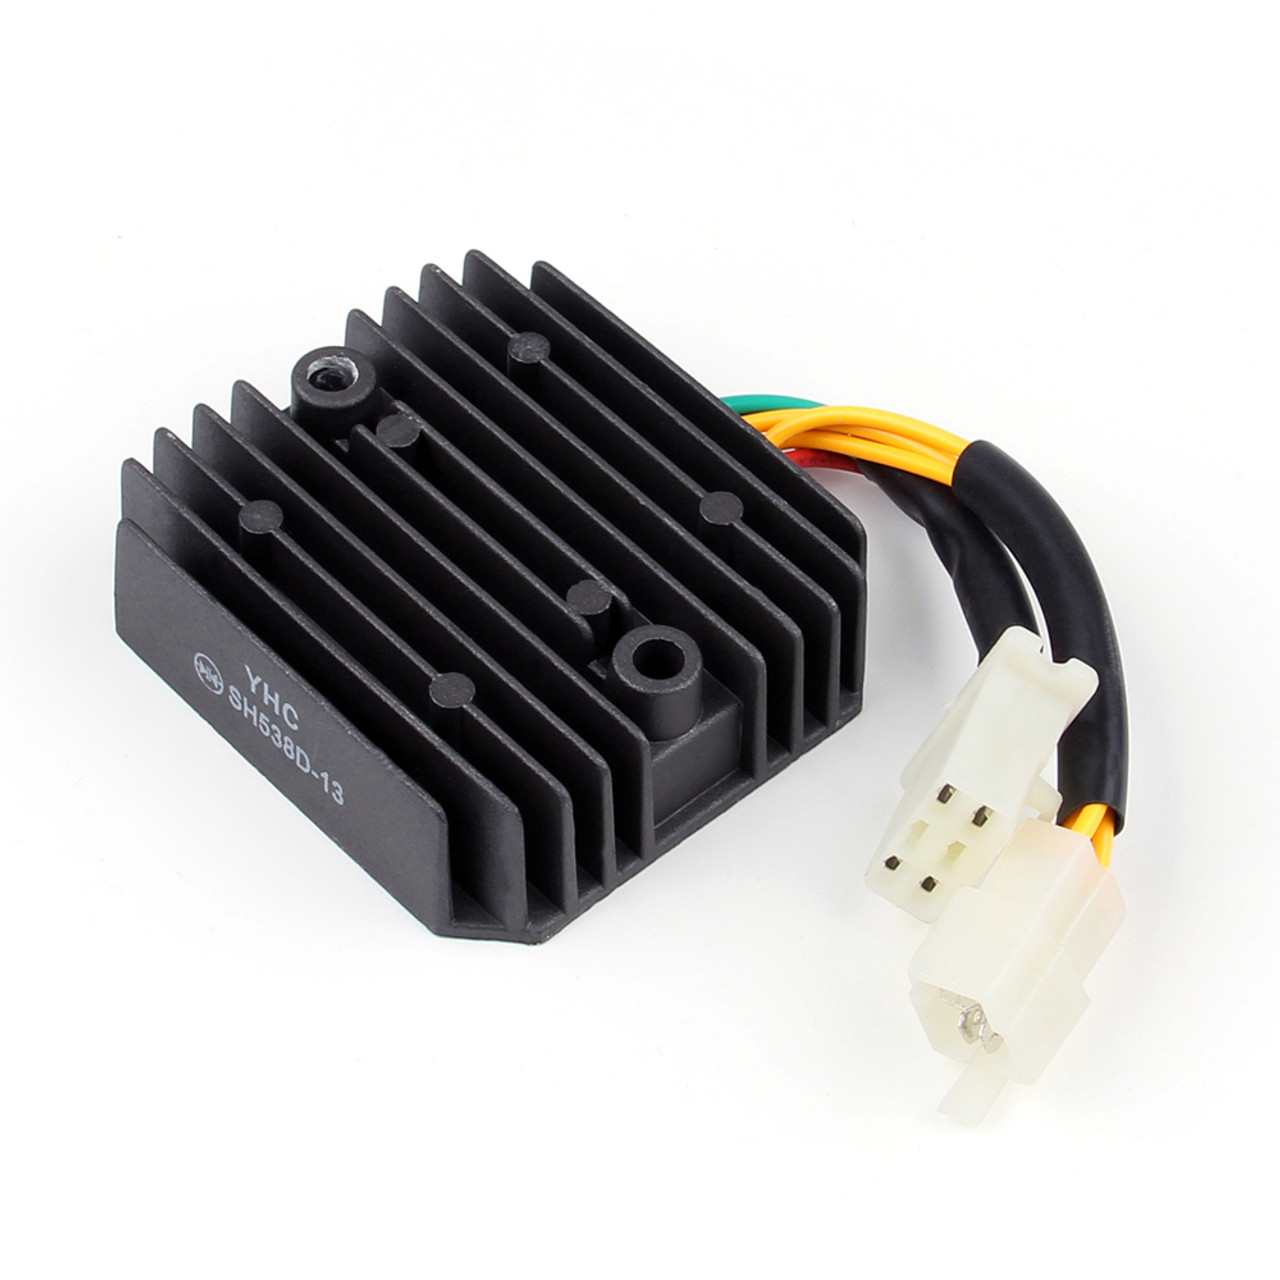 Regulator Voltage Rectifier Fit For Honda XLV600 XL600V 89-90 XLV750R 83-85 VF700C VF700 VF 700 V SHADOW 86-87